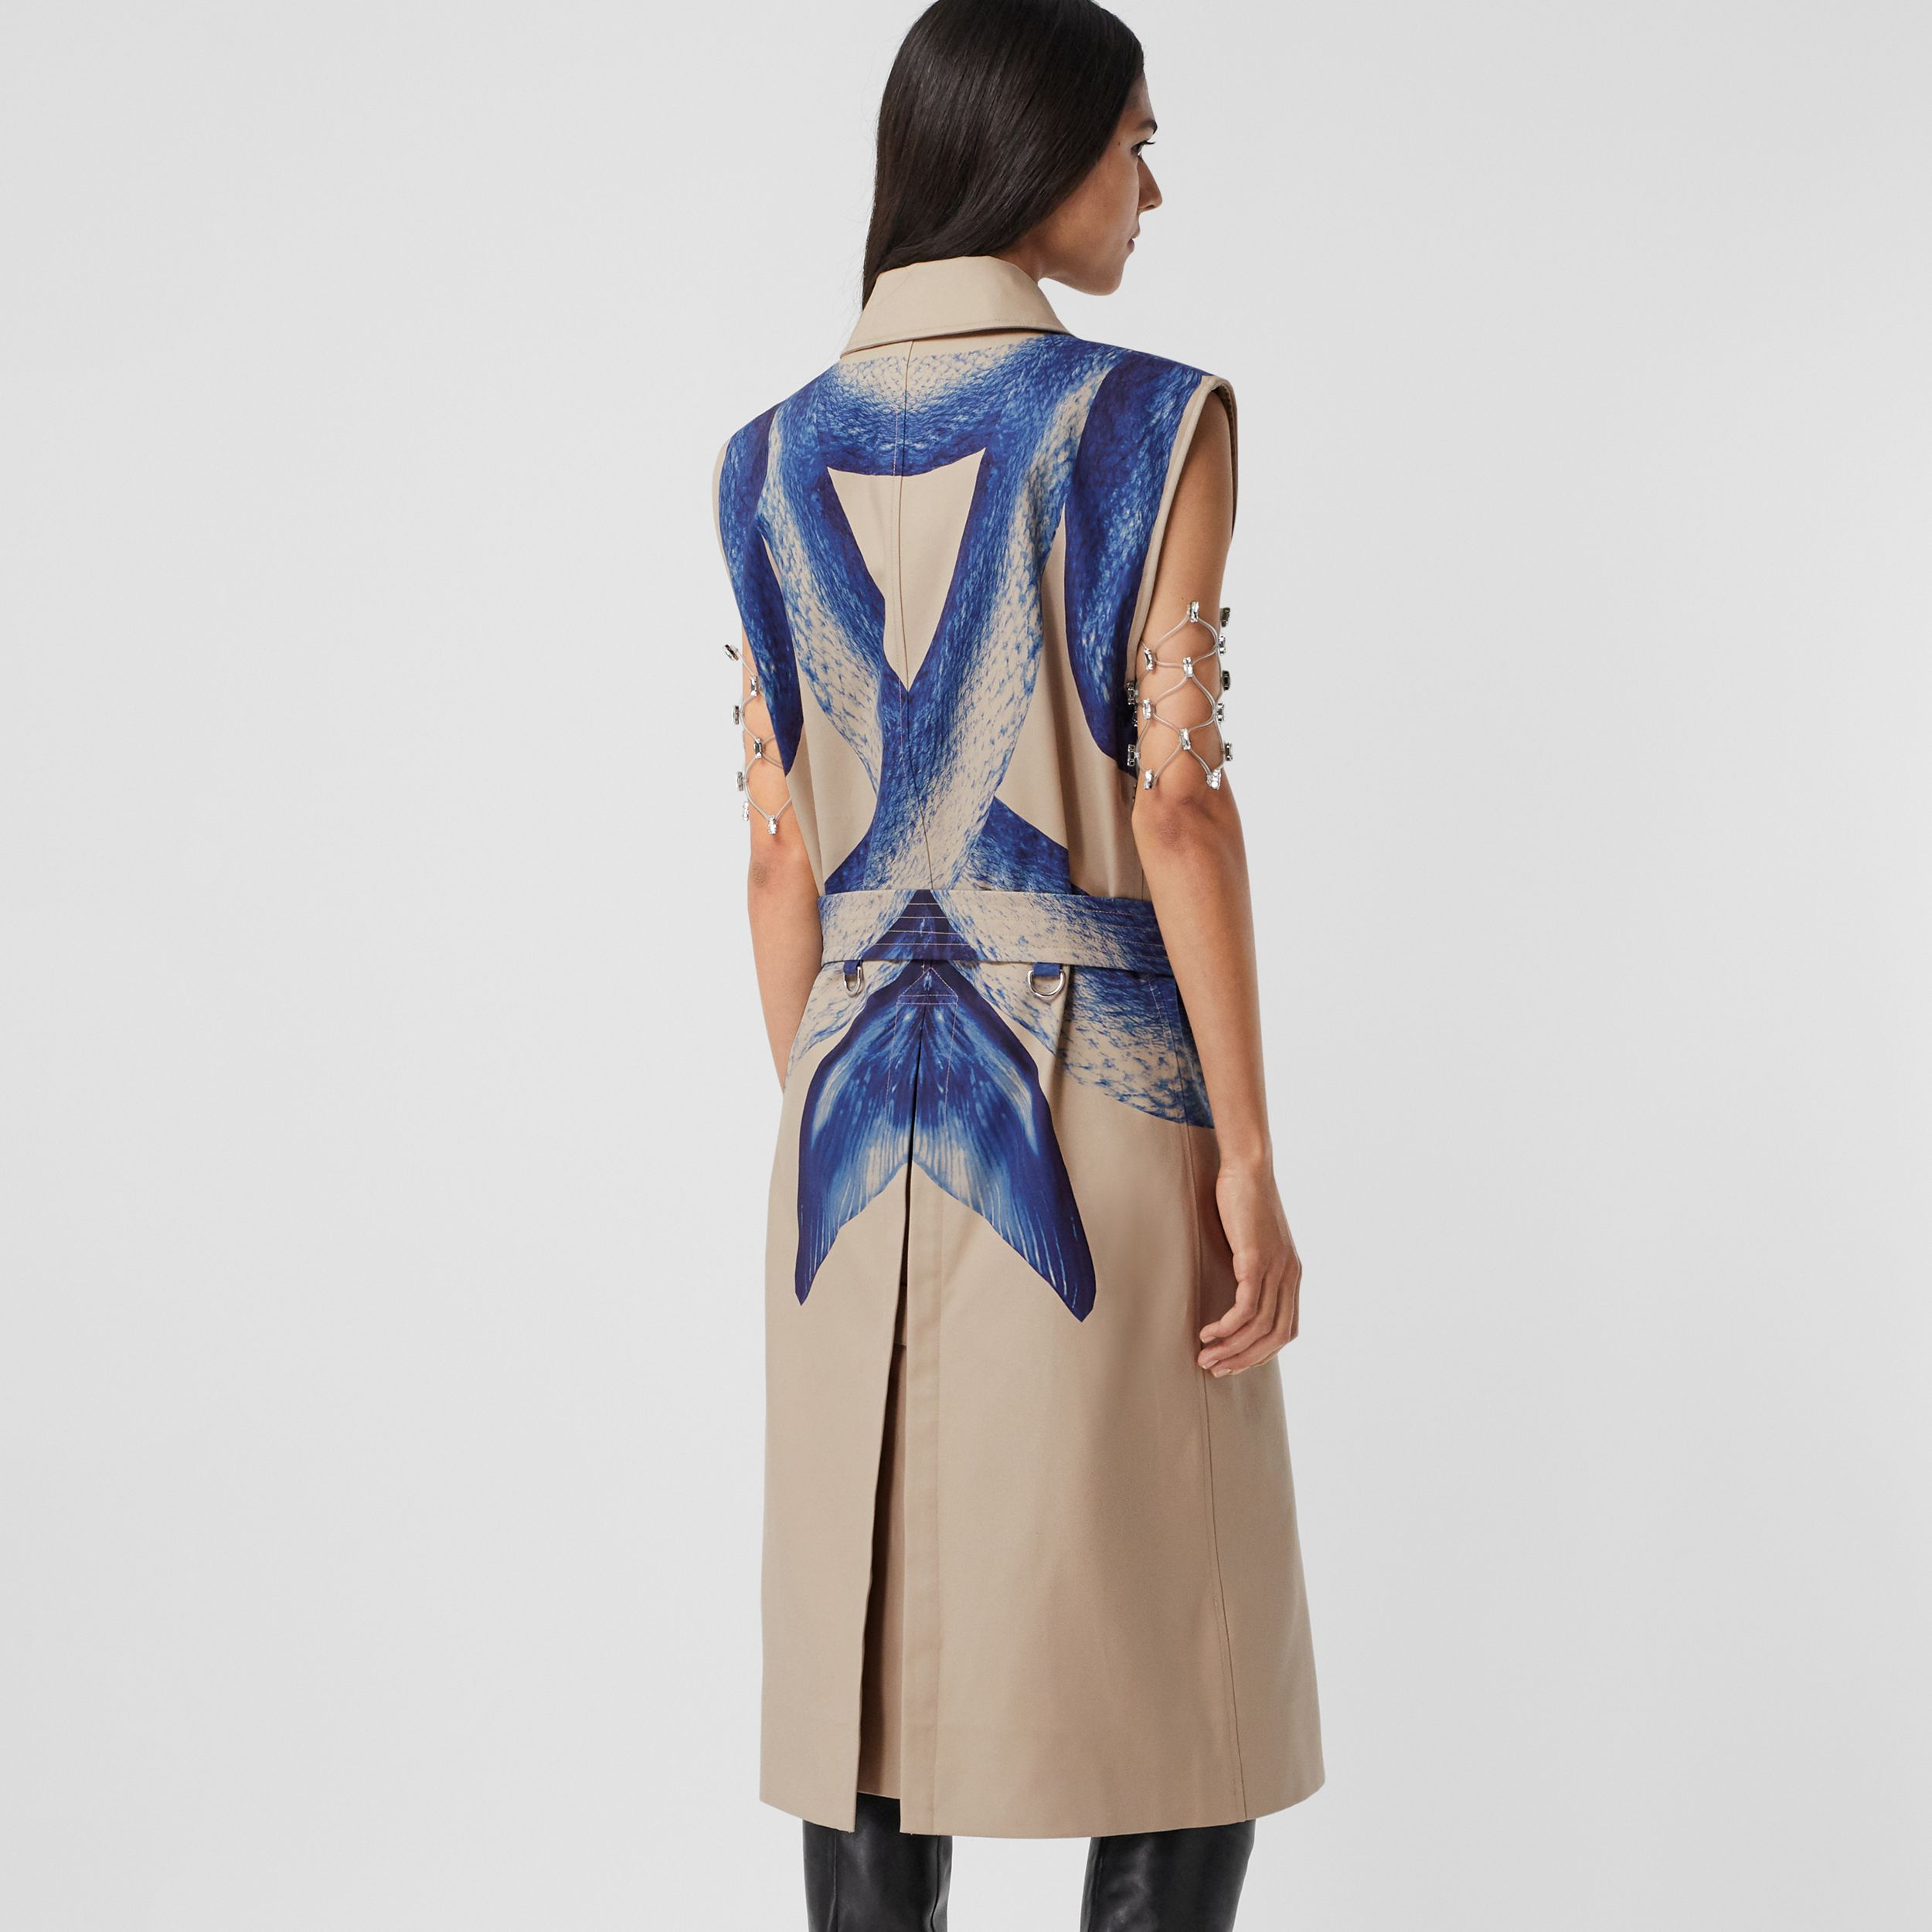 Mermaid Tail Print Cotton Sleeveless Trench Coat in Ink Navy - Women | Burberry United Kingdom - 3